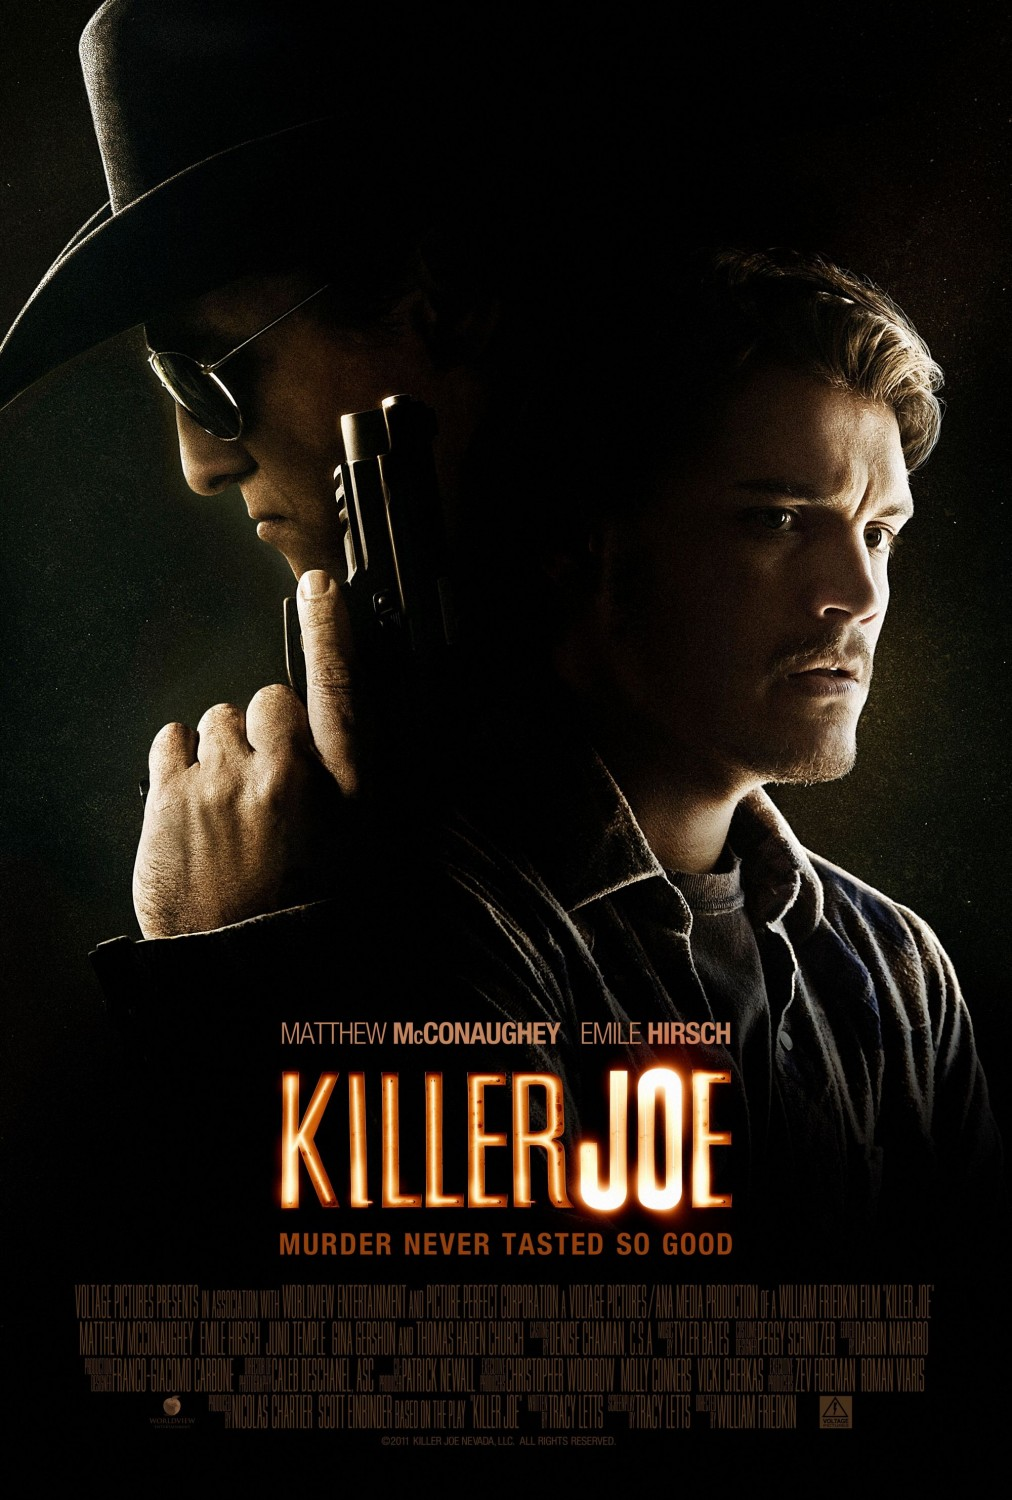 Killer Joe movie poster